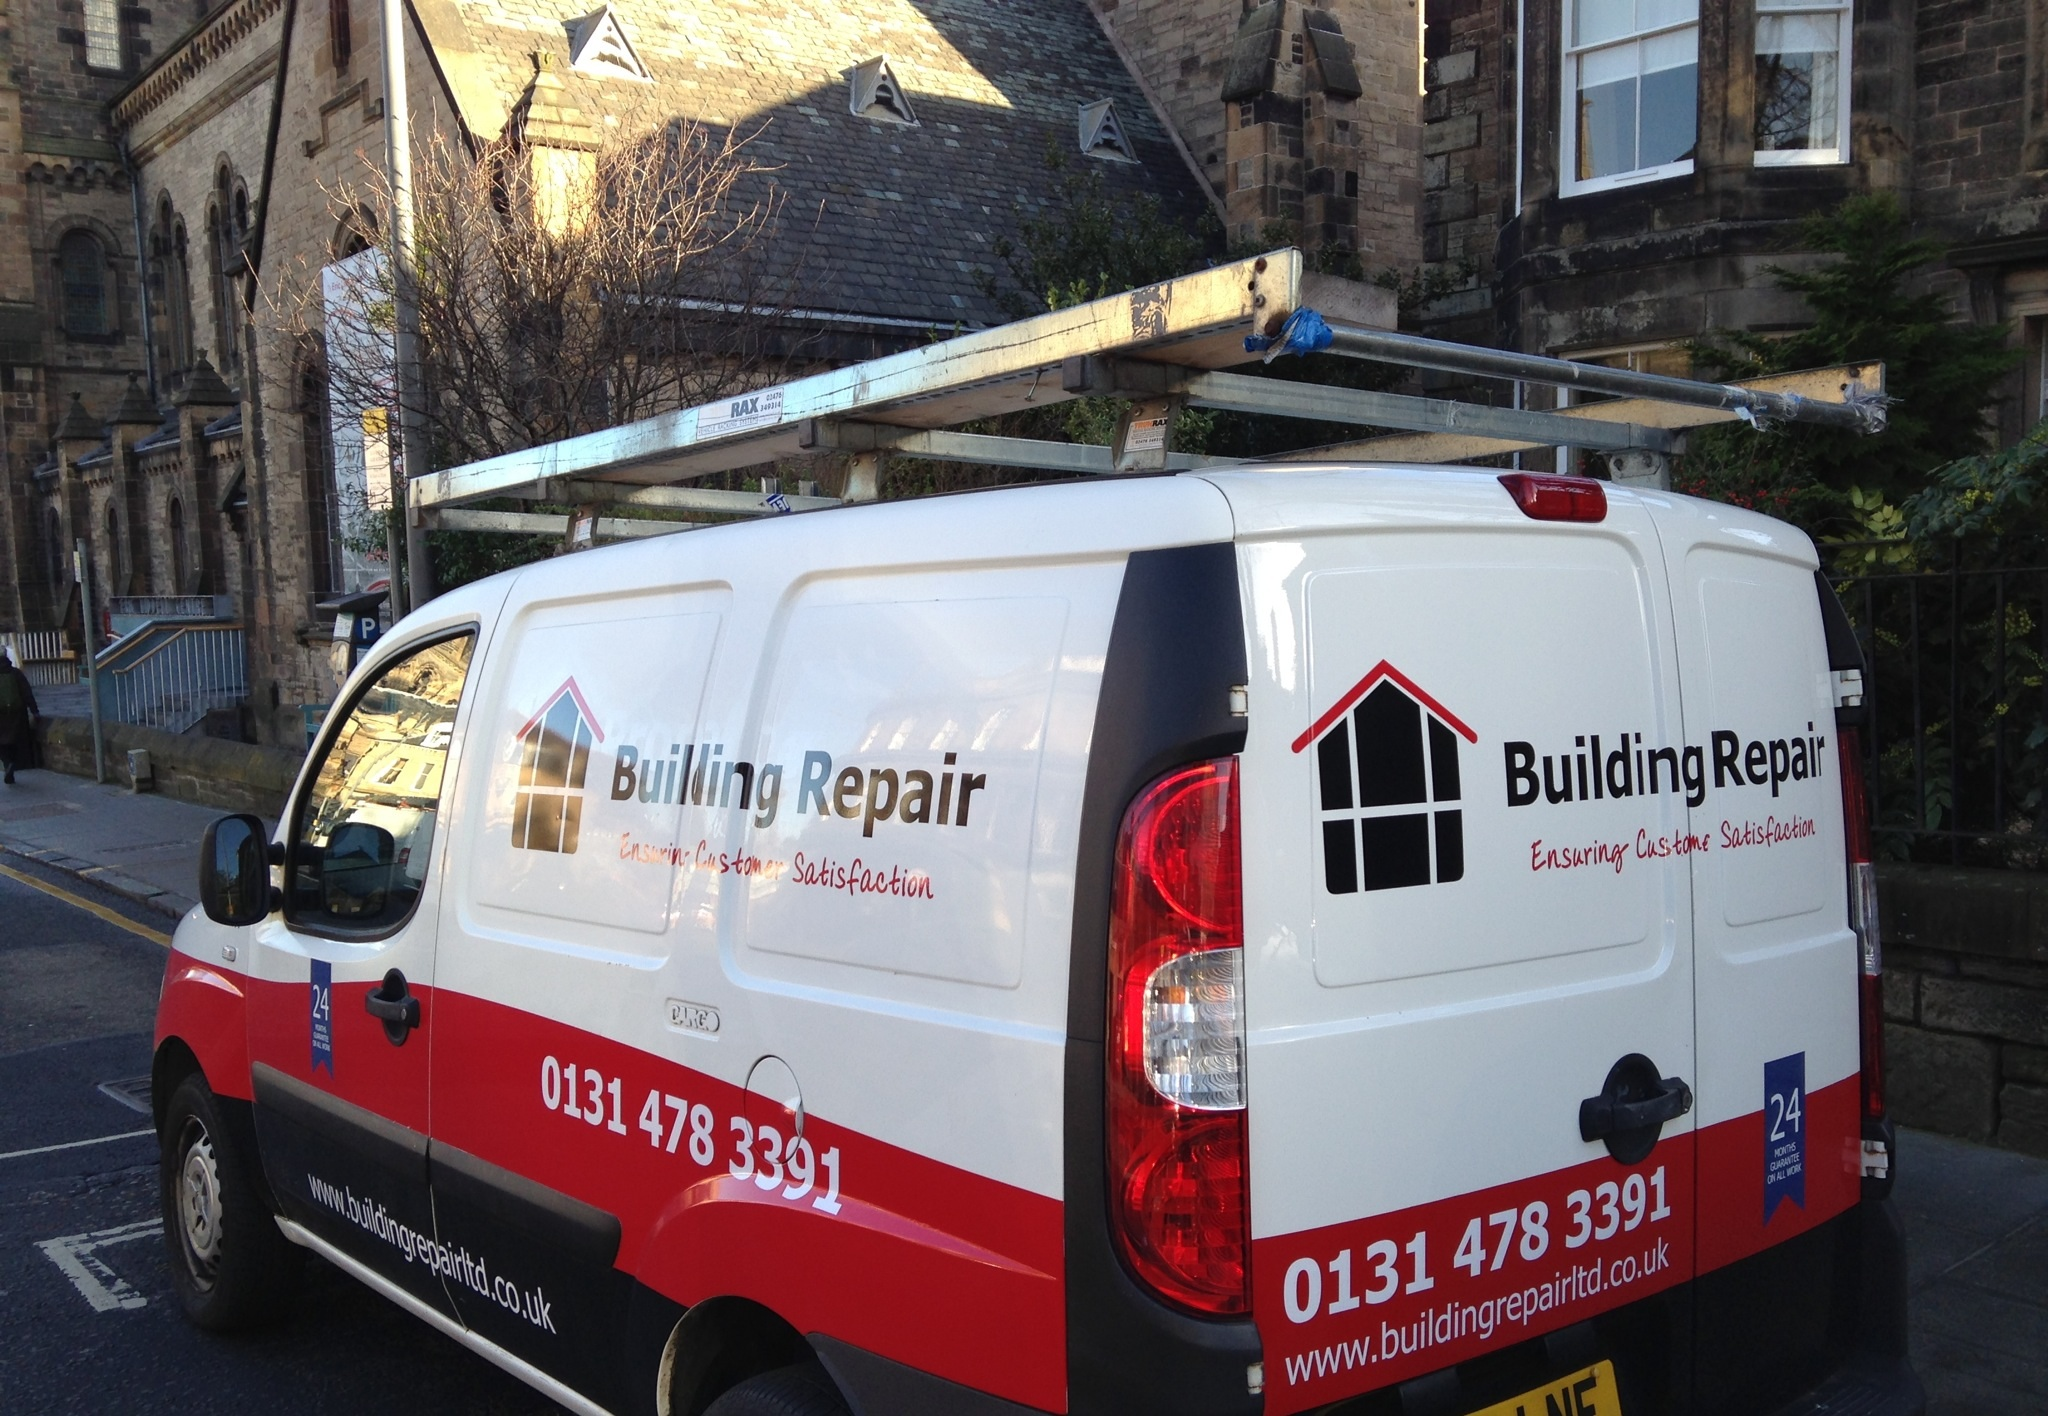 Building Repair - www.buildingrepairltd.co.uk